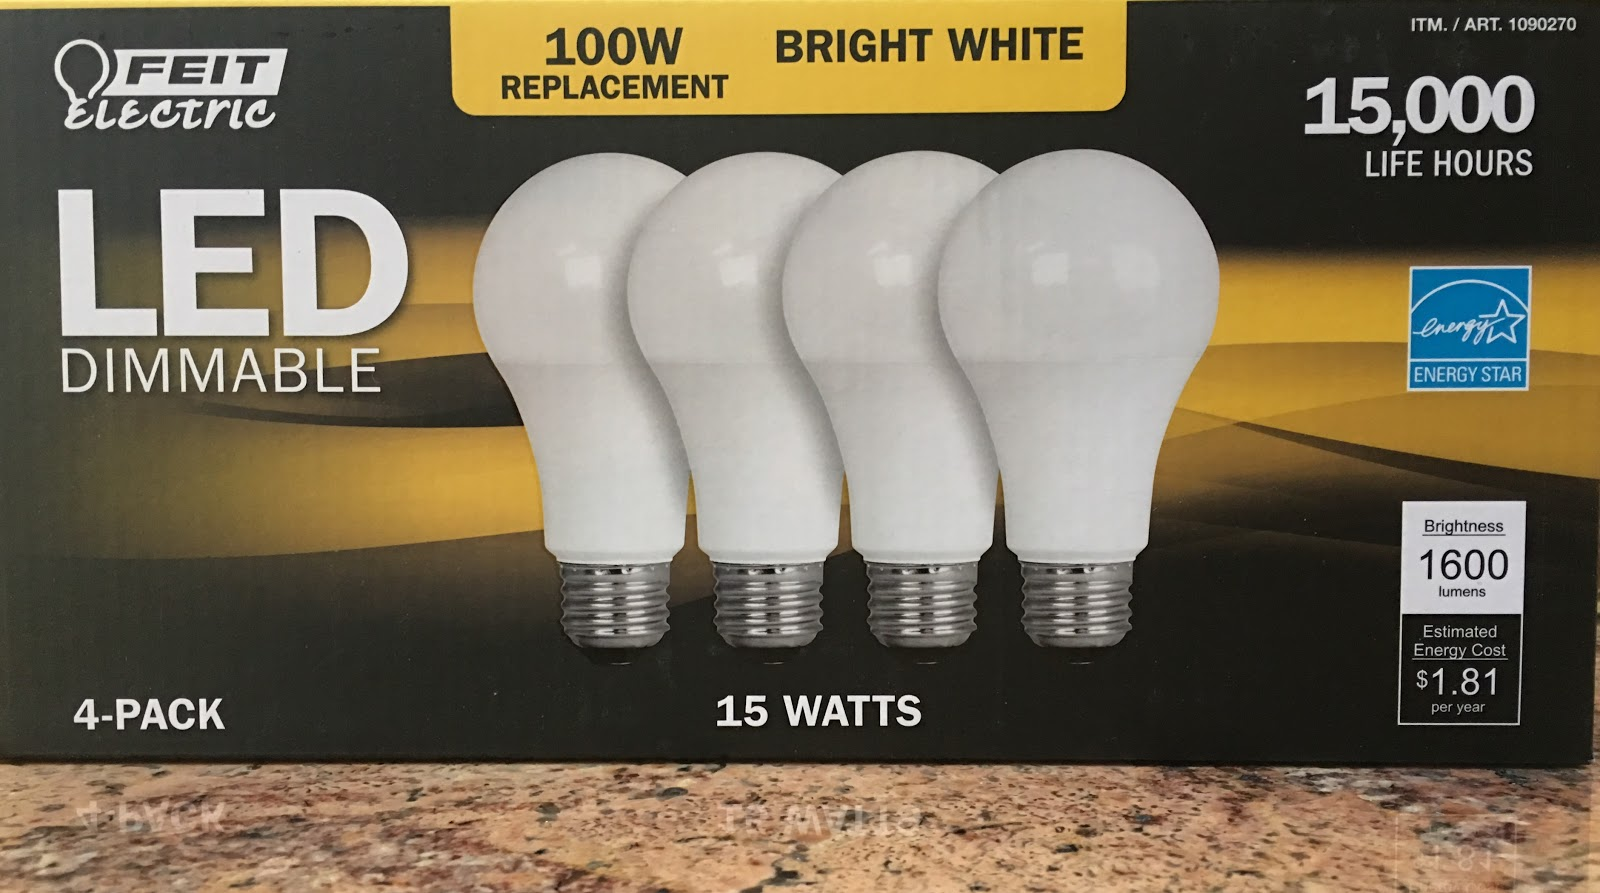 Exceptional At Costco Wholesale In Teterboro On Friday The 13th, A Surprise $15 Rebate  On Feit Electric LED Bulbs Brought The Price Down To $1.99 Or About 50  Cents Per ... Pictures